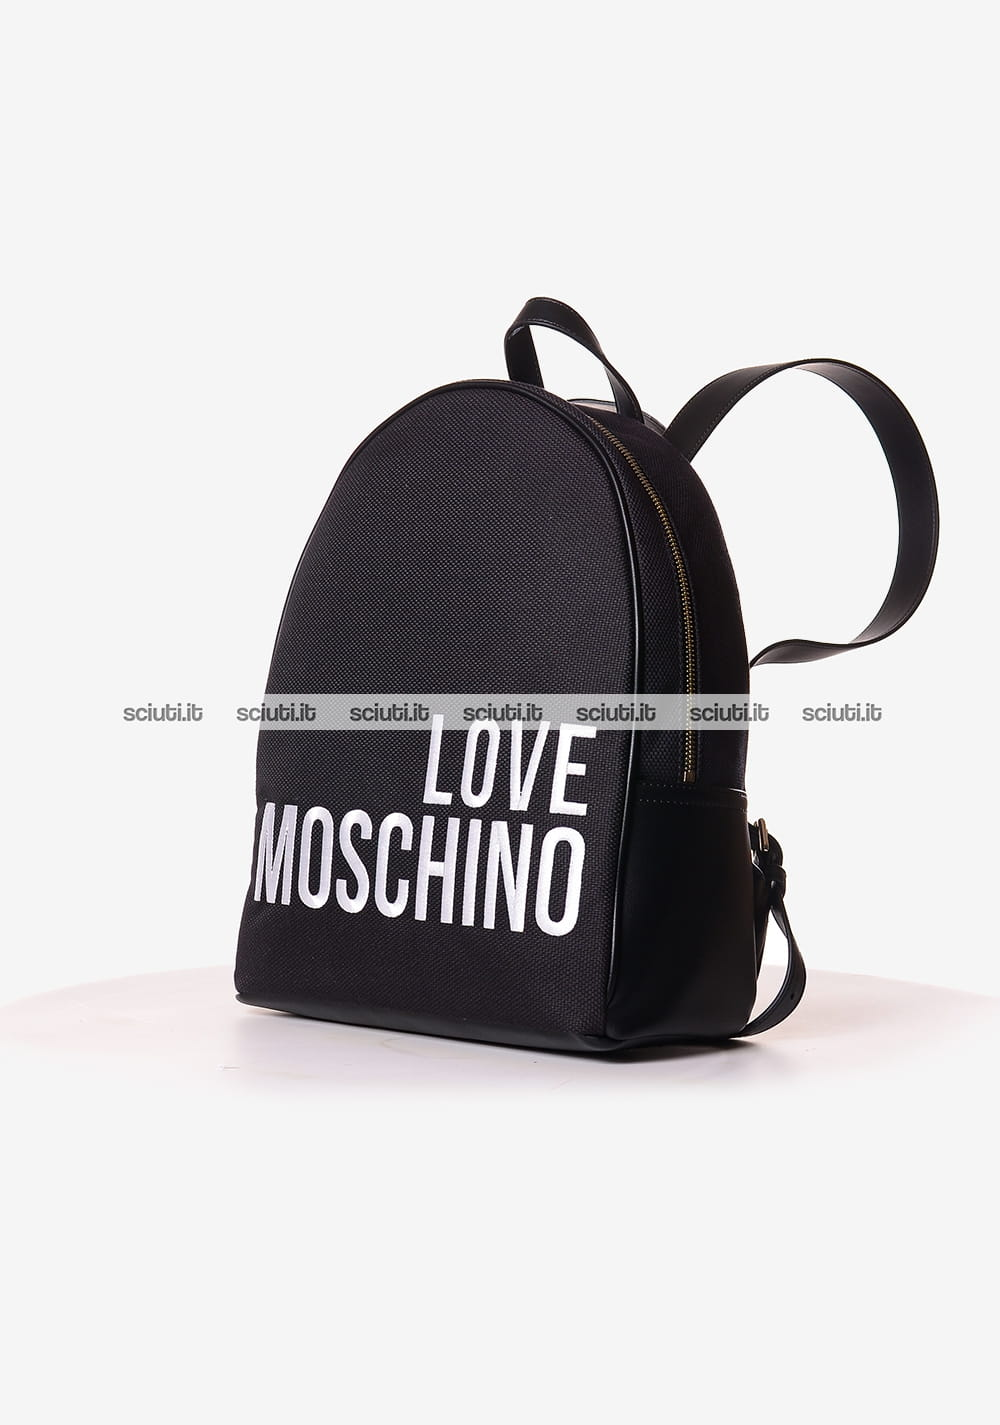 d30806381e Zaino Love Moschino donna logo in contrasto nero | Sciuti.it